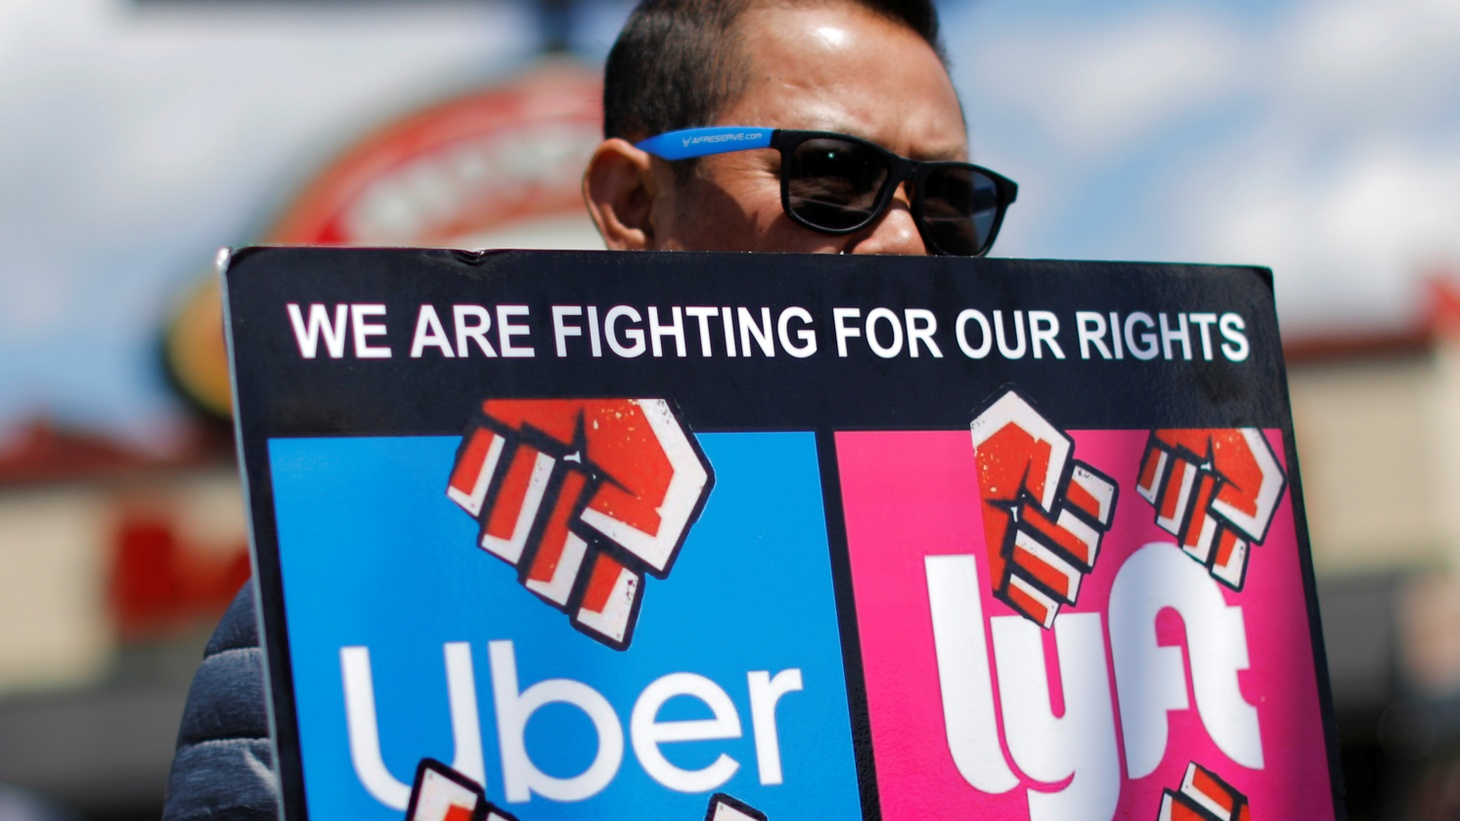 A driver takes part in a protest against Uber and other app-based ride-hailing companies outside the Uber Greenlight offices in the Queens borough of New York, U.S., May 8, 2019.